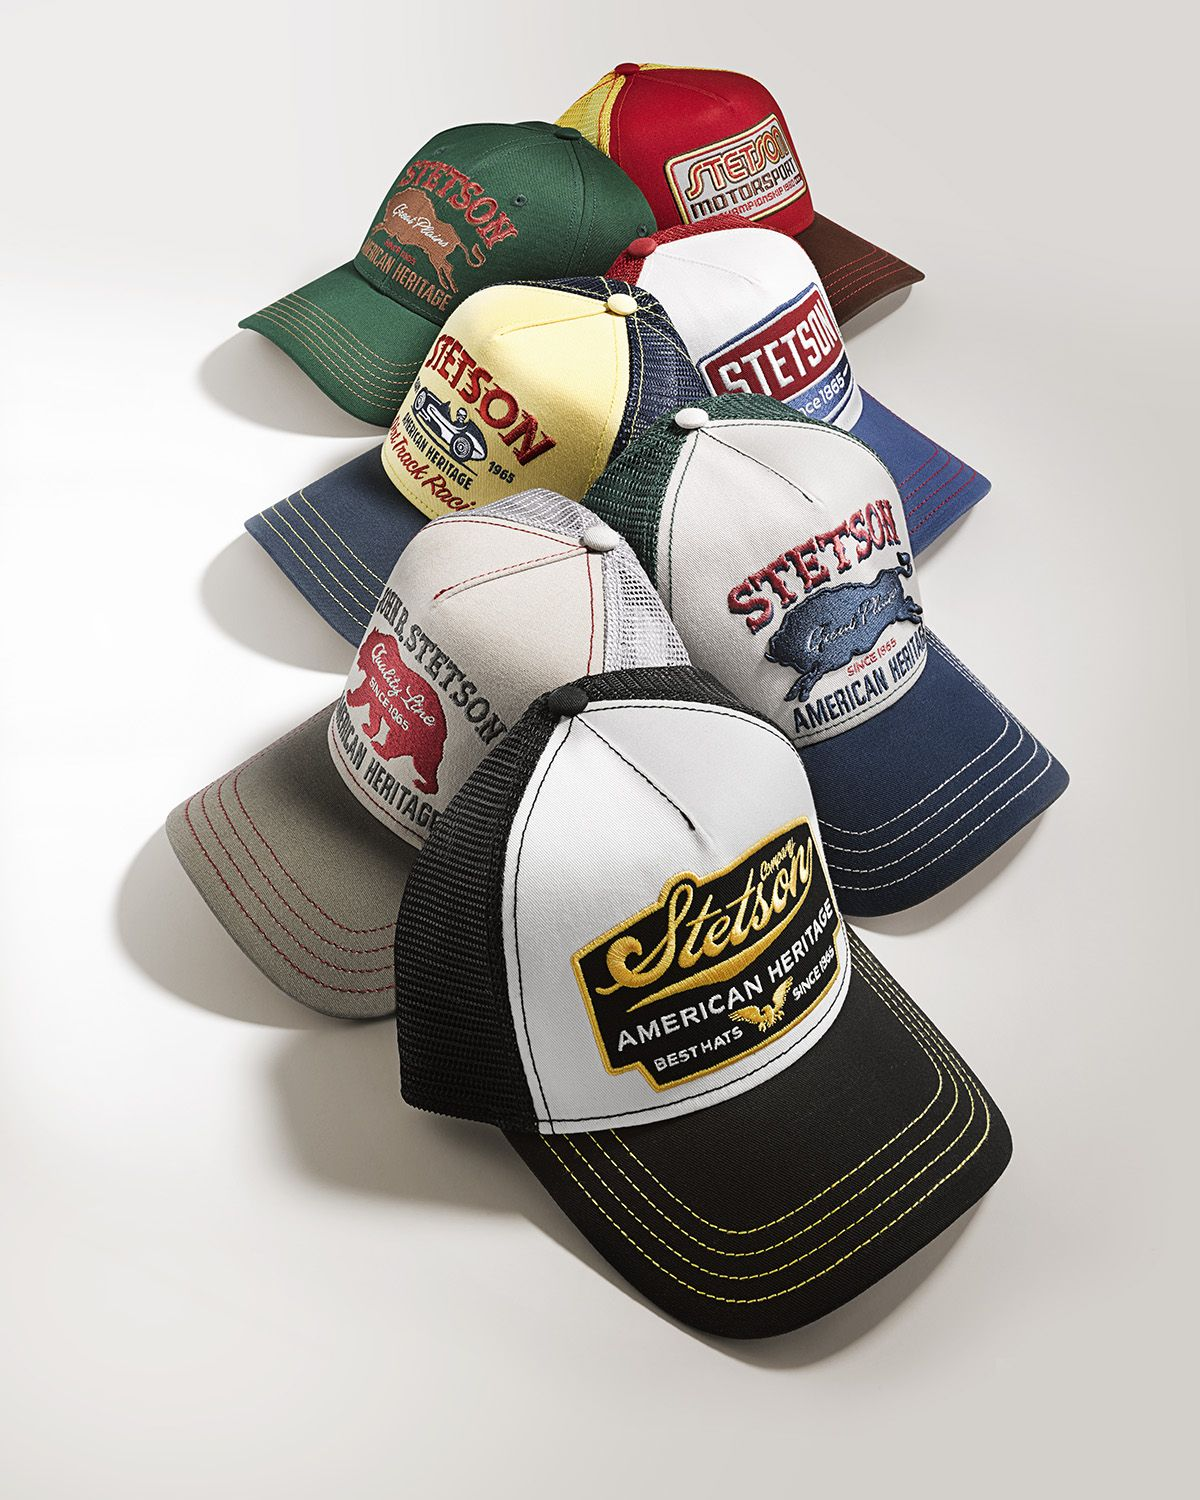 Pin By Stetson On Stetson Web Images Going Out Stetson Style